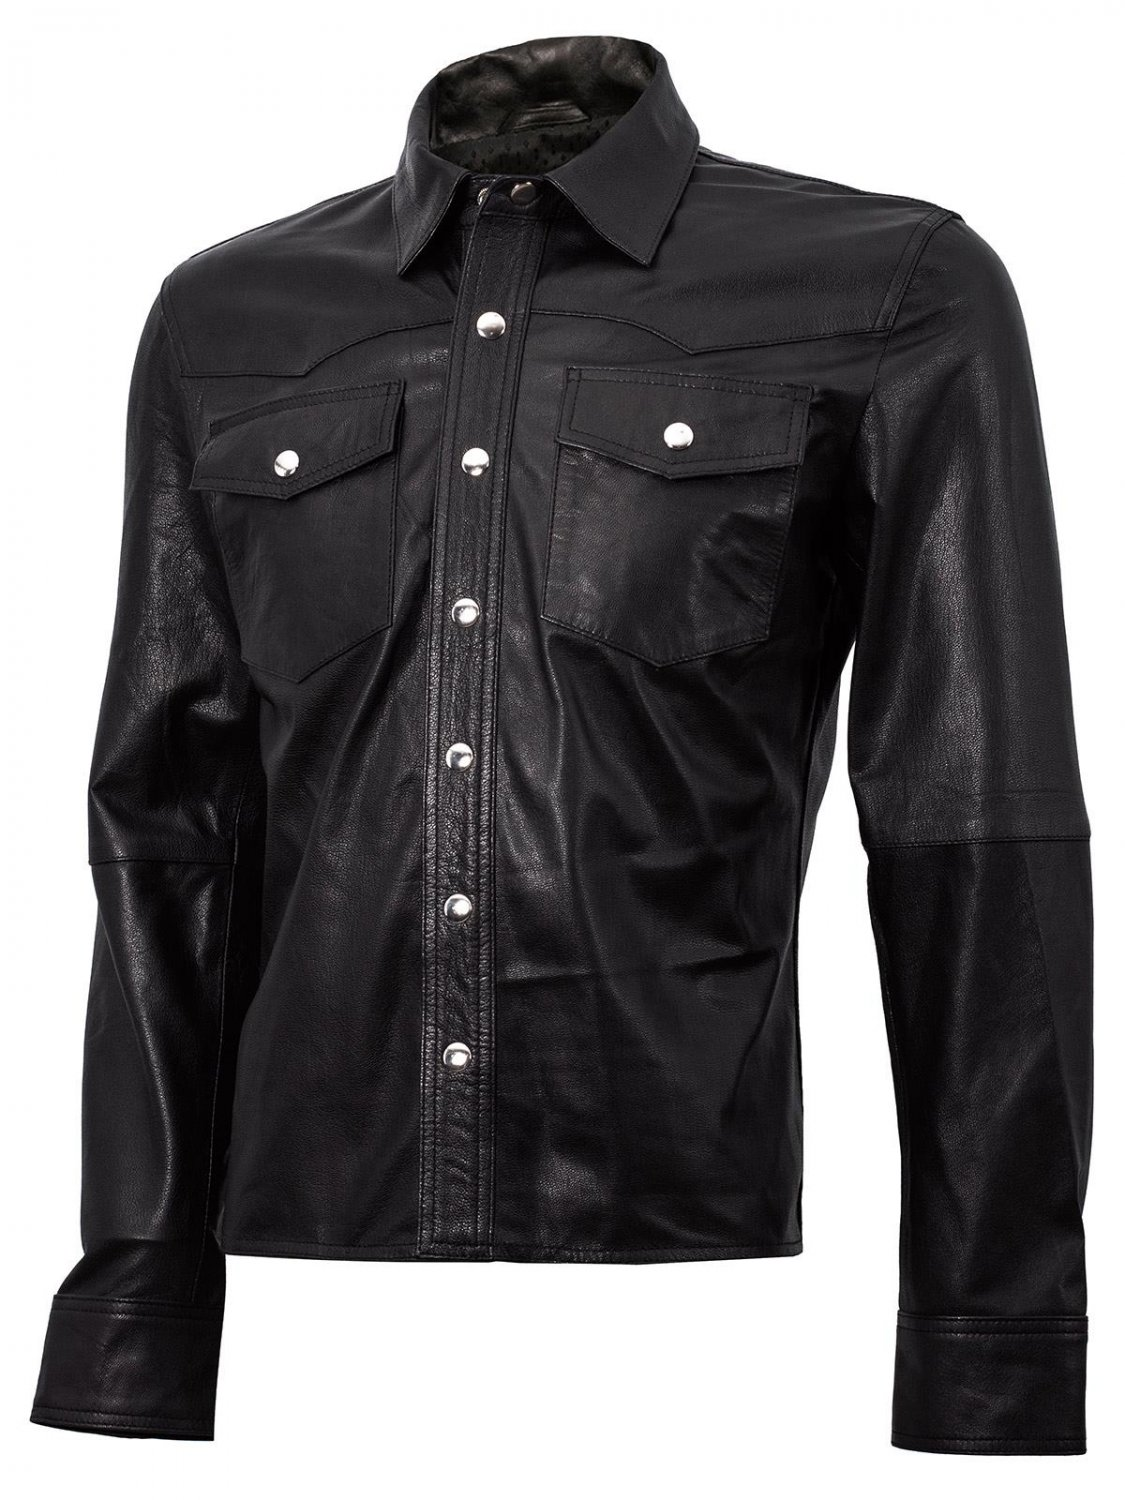 Summer Jacket - Leather Shirt in Black